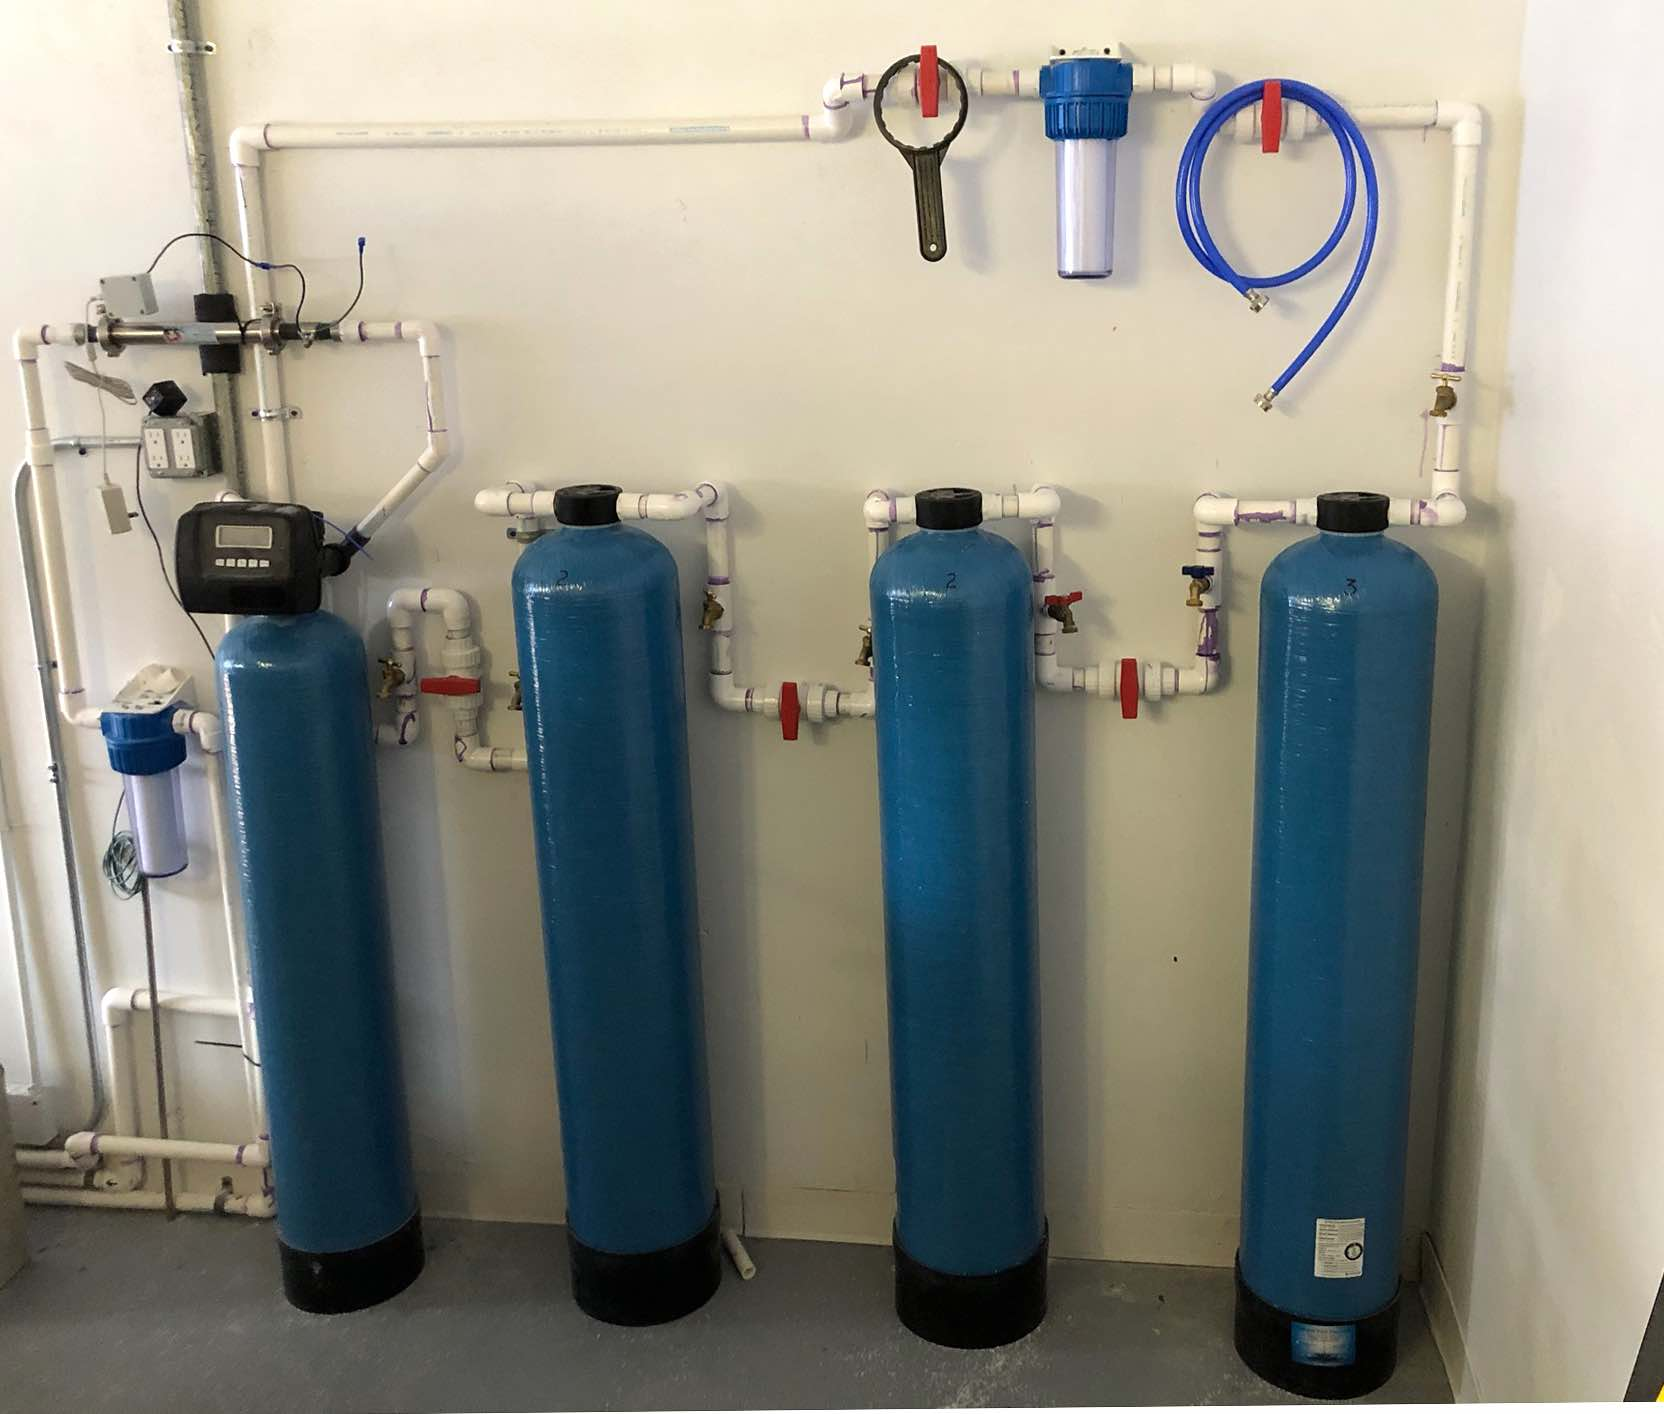 Fluoride removing whole-house filter system